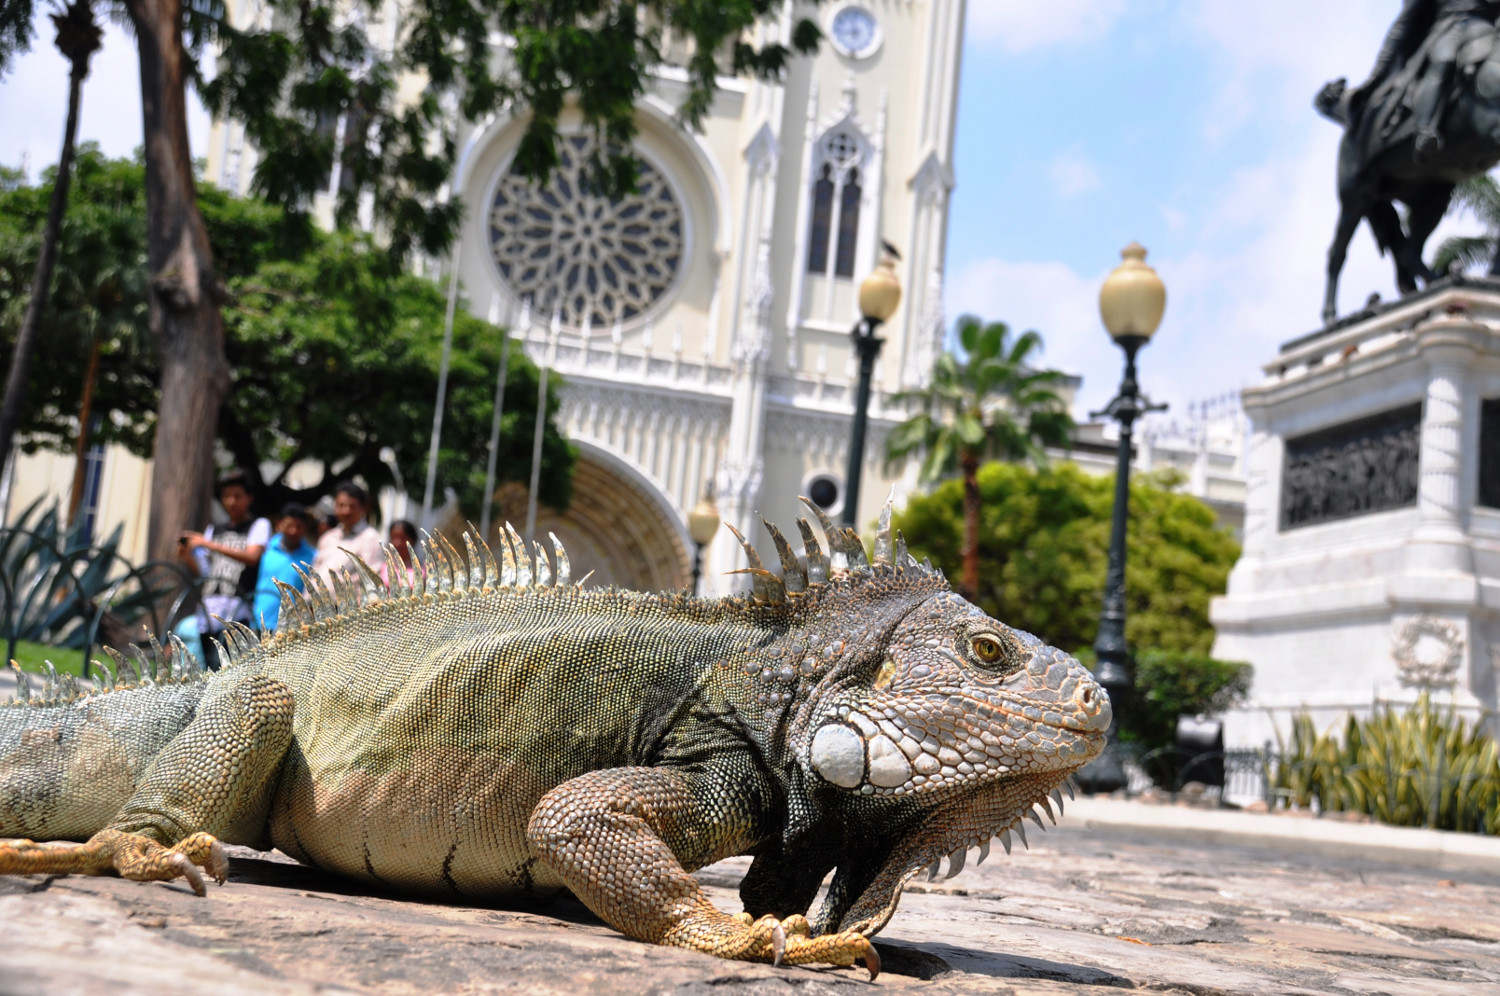 Parque Seminario: Mitten in der 3-Millionen-Stadt Guayaquil tummeln sich grüne Landleguane | Parque Seminario: in the heart of Guayaquil, a city of 3 million inhabitants, there are plenty of green land iguanas going about their business